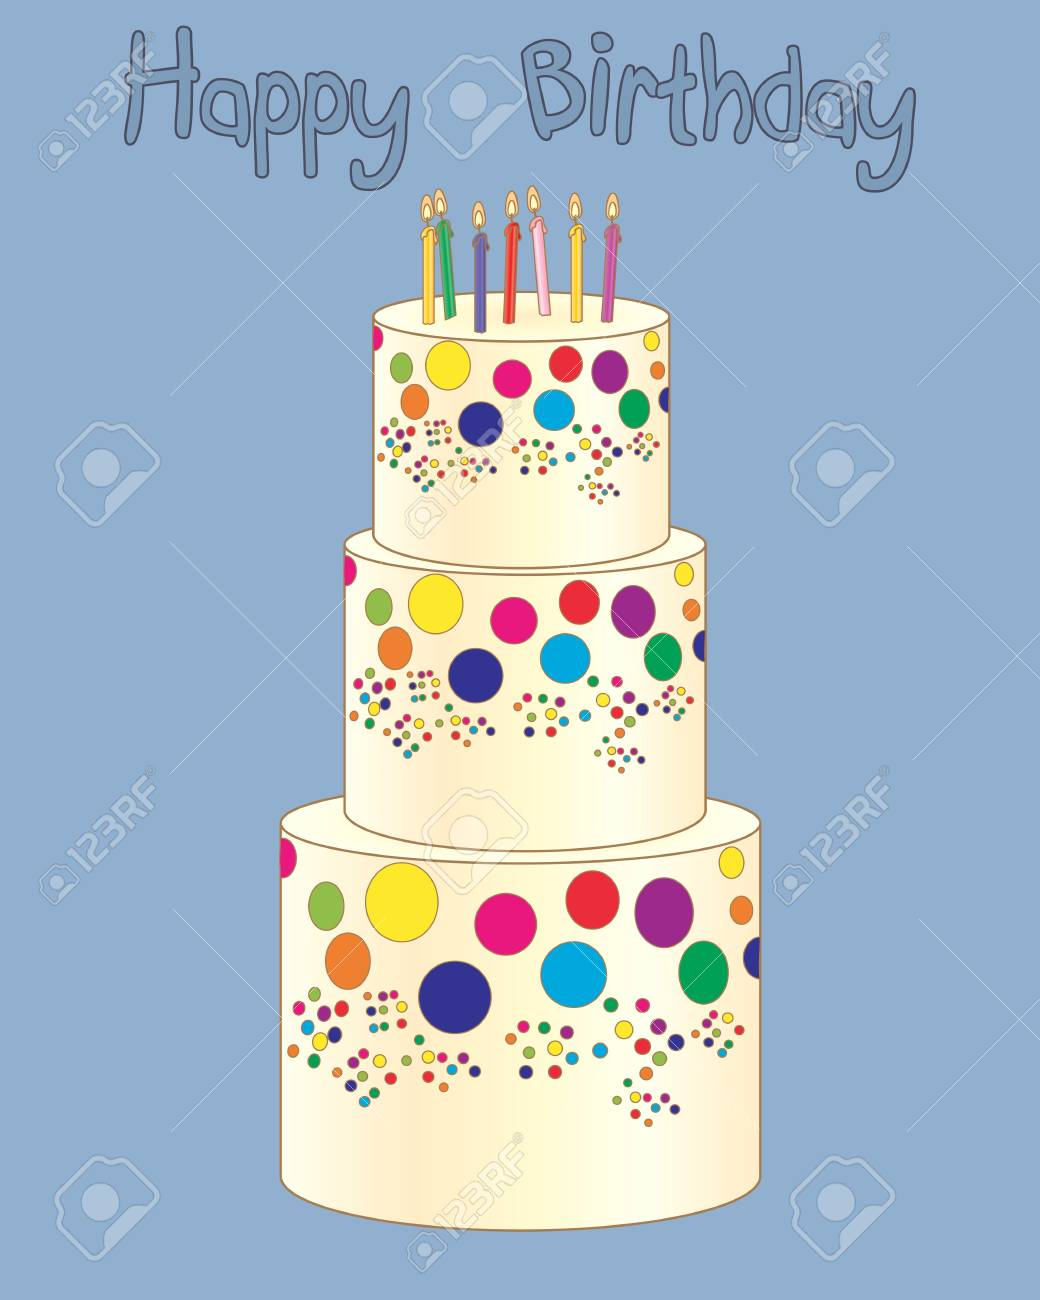 Illustration Of A Three Tier Birthday Cake With Colorful Candles Royalty Free Cliparts Vectors And Stock Illustration Image 80832482